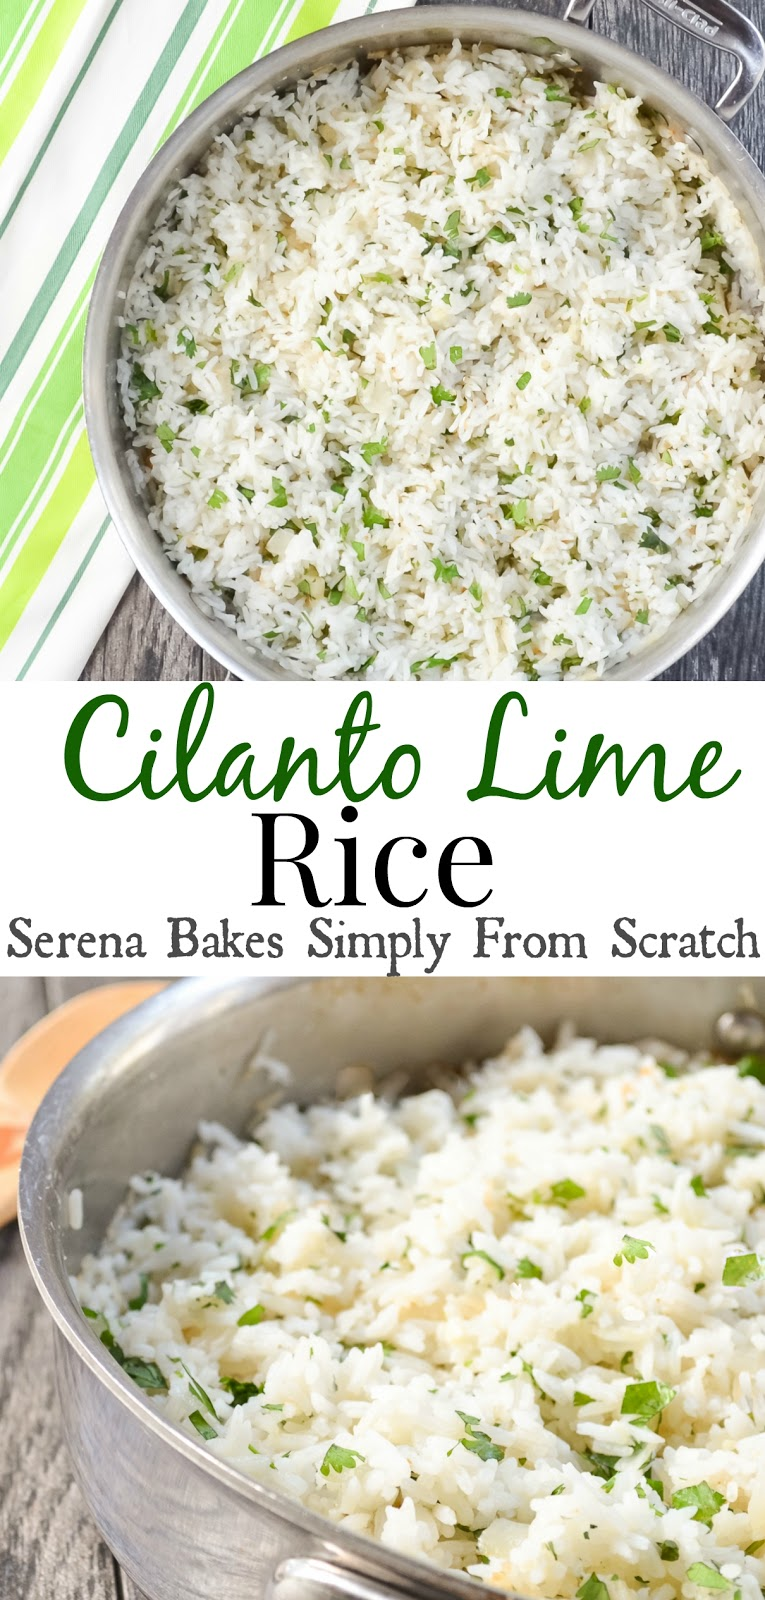 Easy to make Cilantro Lime Rice. serenabakessimplyfromscratch.com